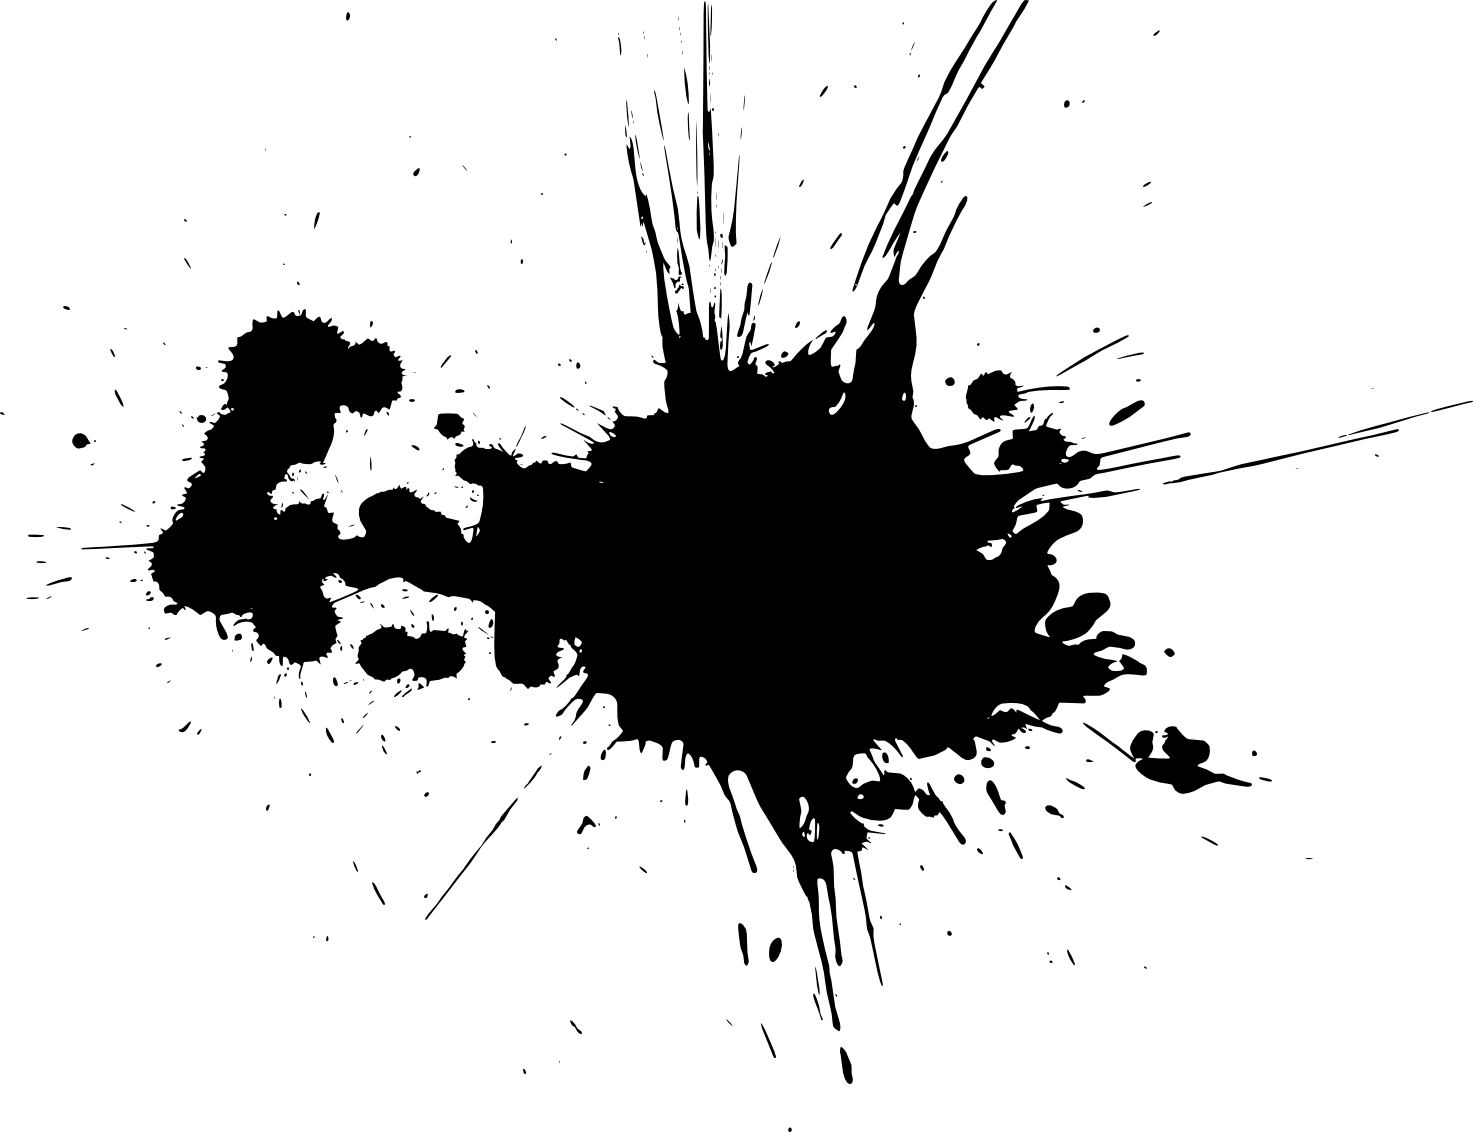 Paint splatter png. Splatters transparent onlygfx